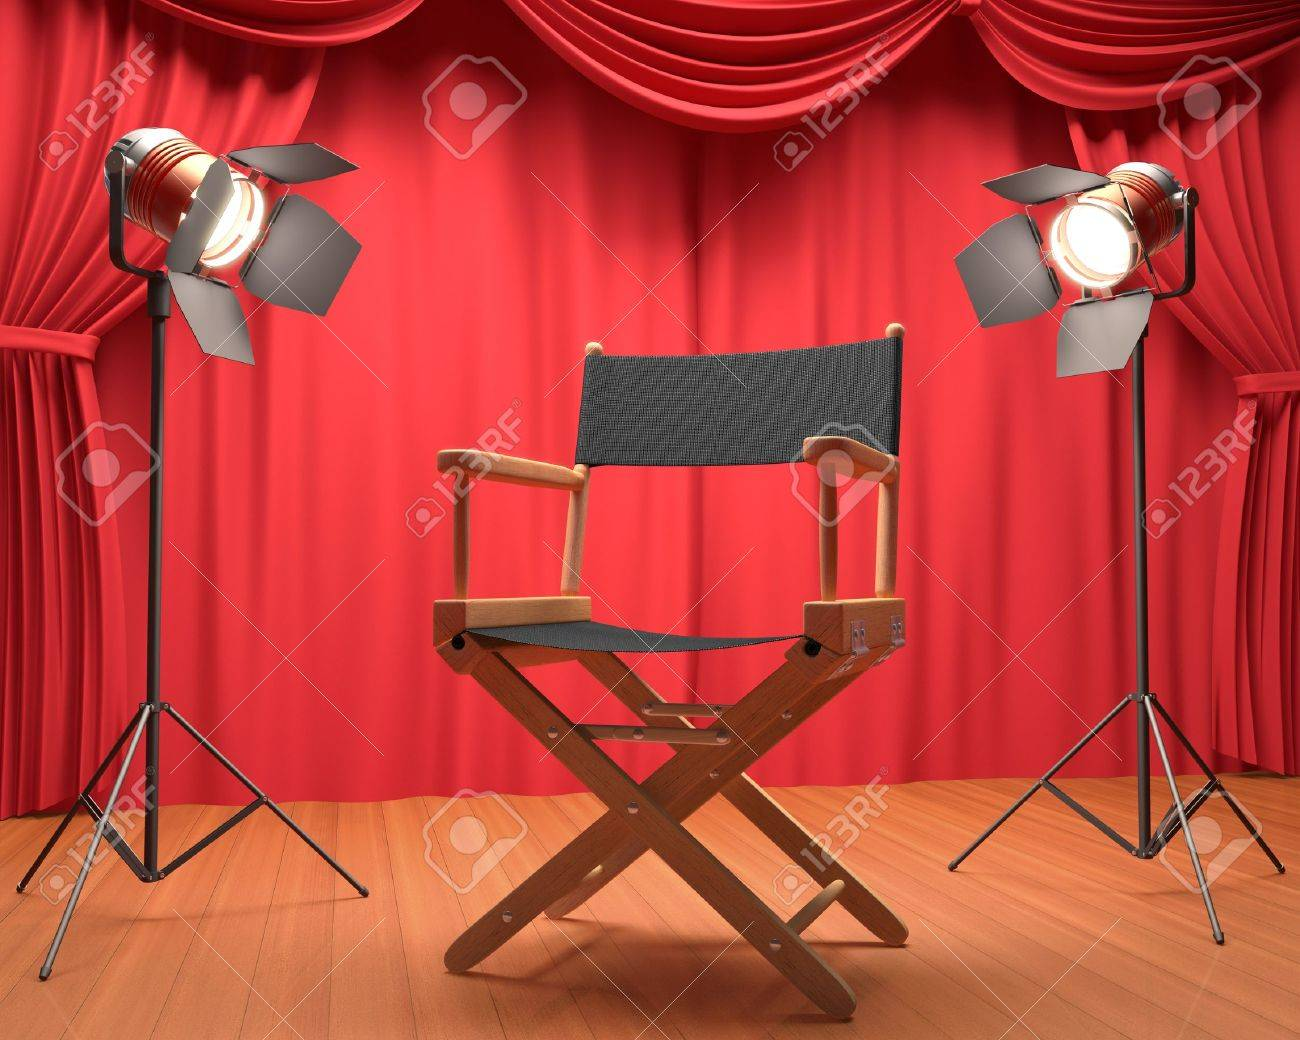 Director's chair on the stage illuminated by floodlights. - 16380381